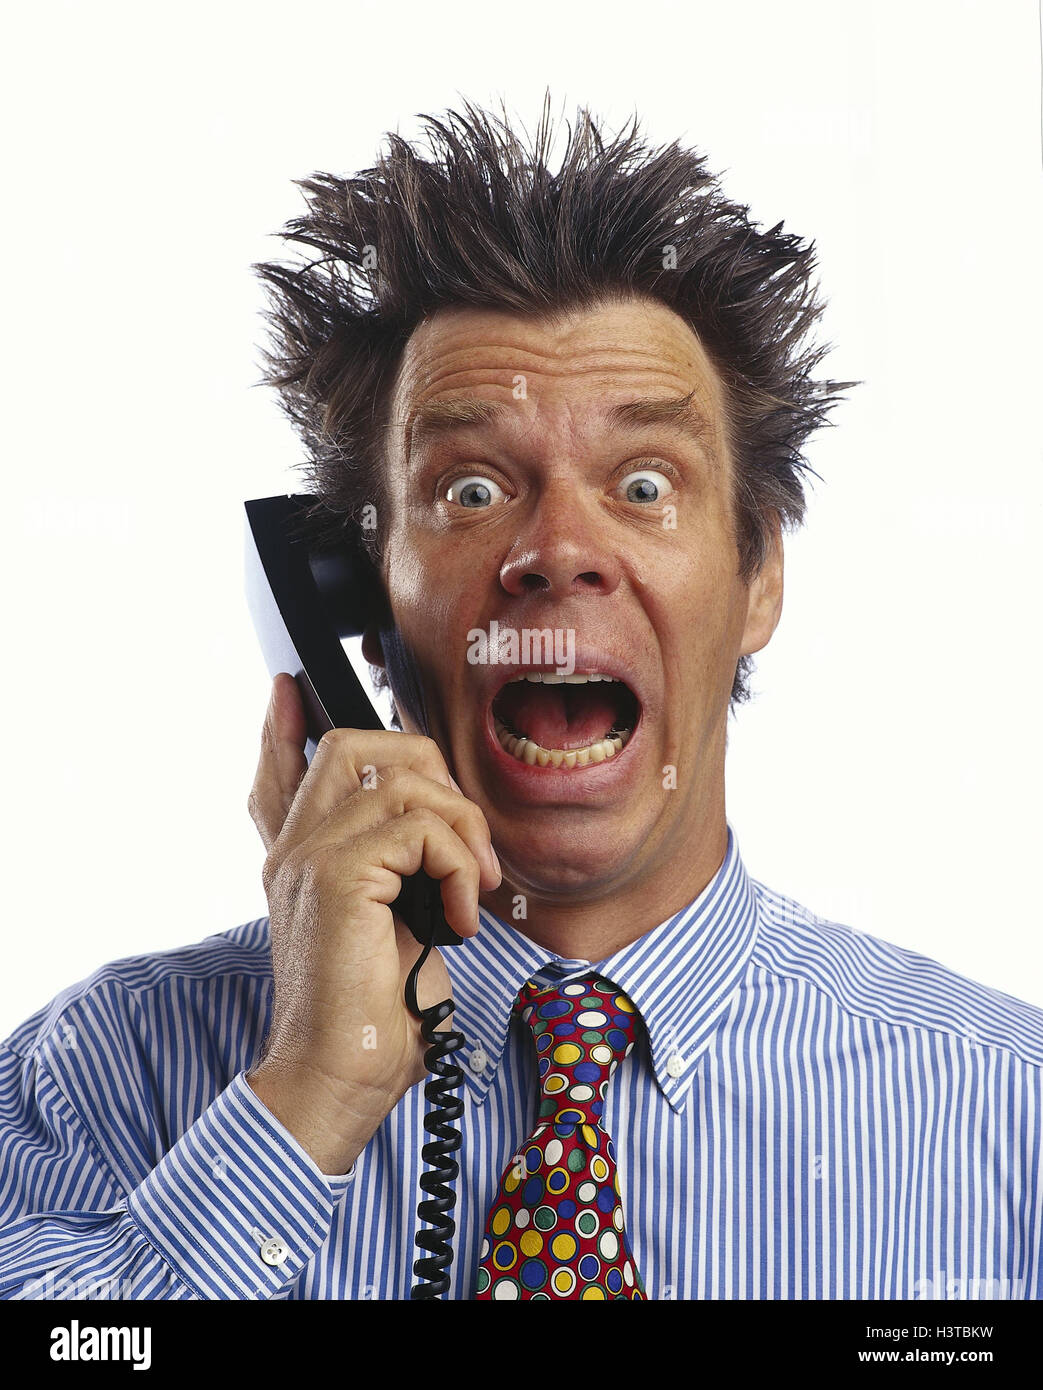 Man, call up, gesture, fright, terror, portrait, 'hairs to mountains stand', business, office worker, phone, - Stock Image